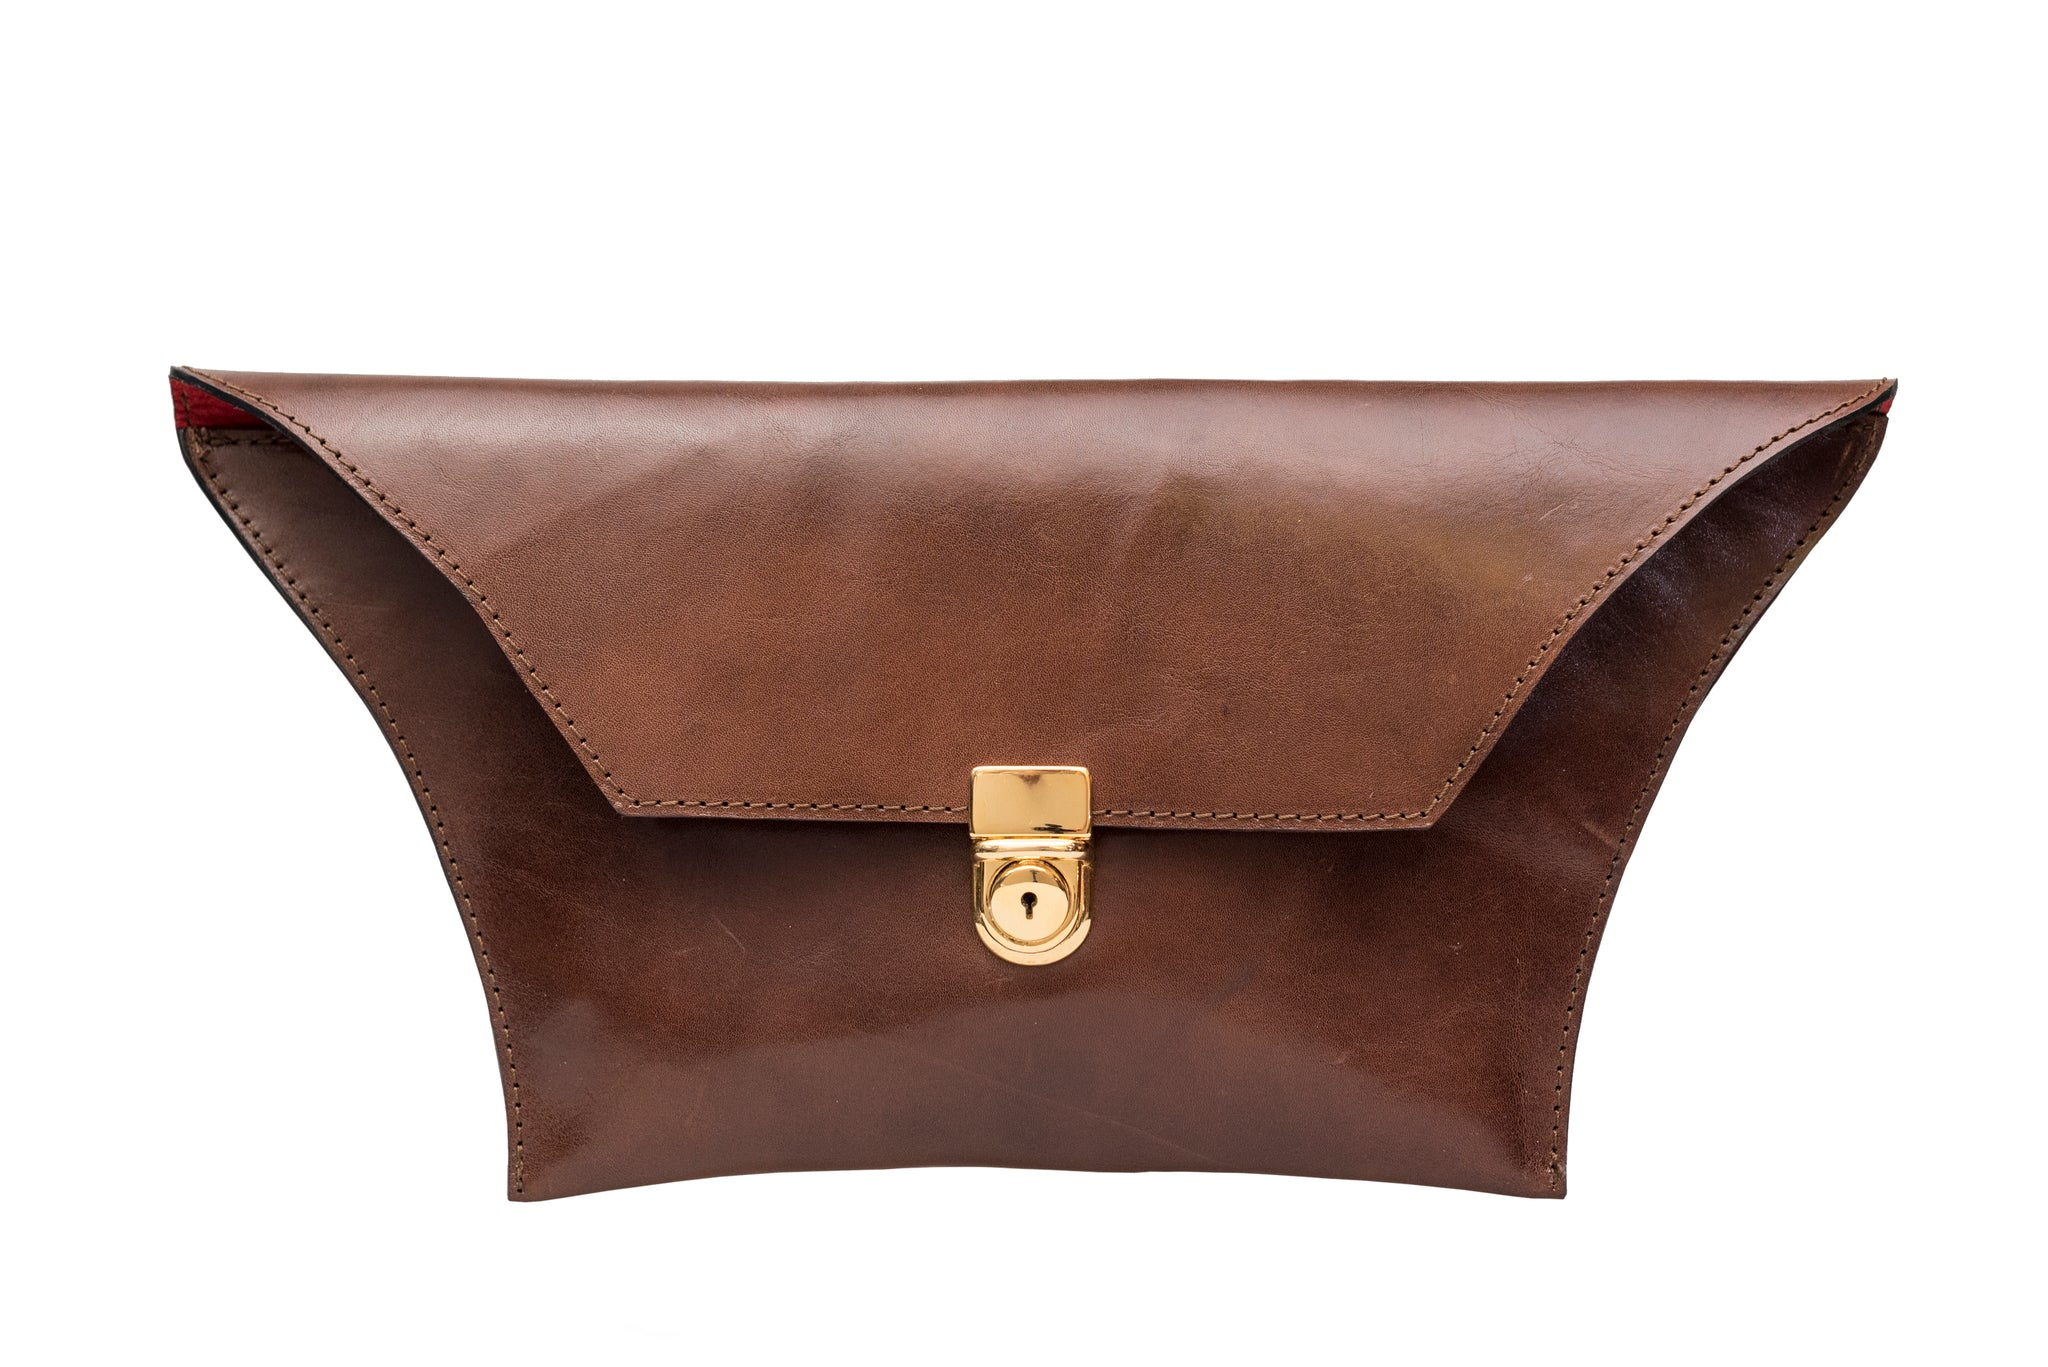 Clutch / Evening Bag/ small brown clutch - Avi Algrisi